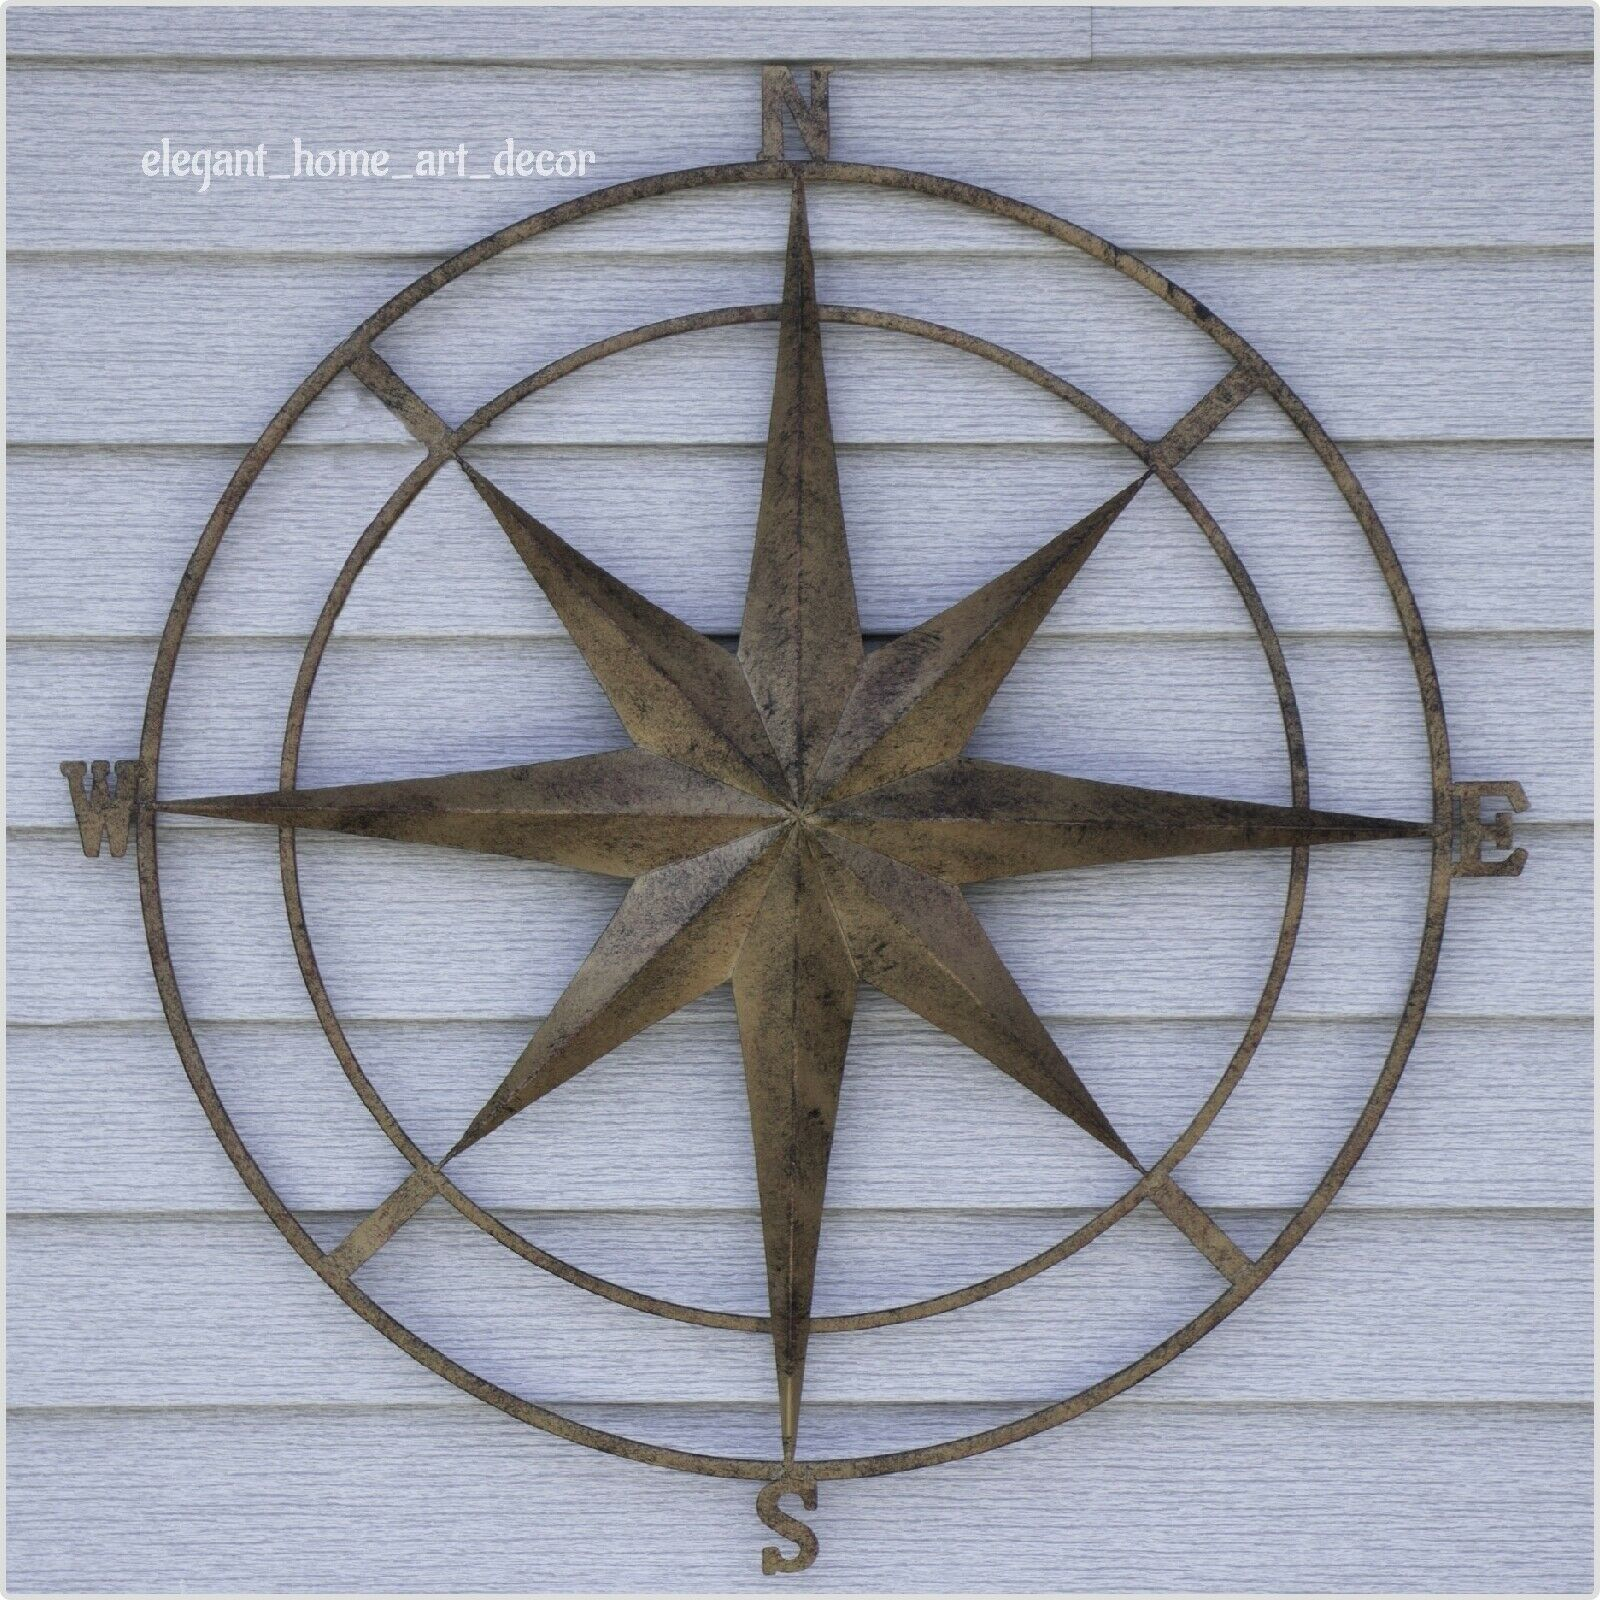 Details About Compass Wall Decor Metal Vintage Rustic Style Nautical Garden Art Home Sculpture Throughout Outdoor Metal Wall Compass (View 25 of 30)